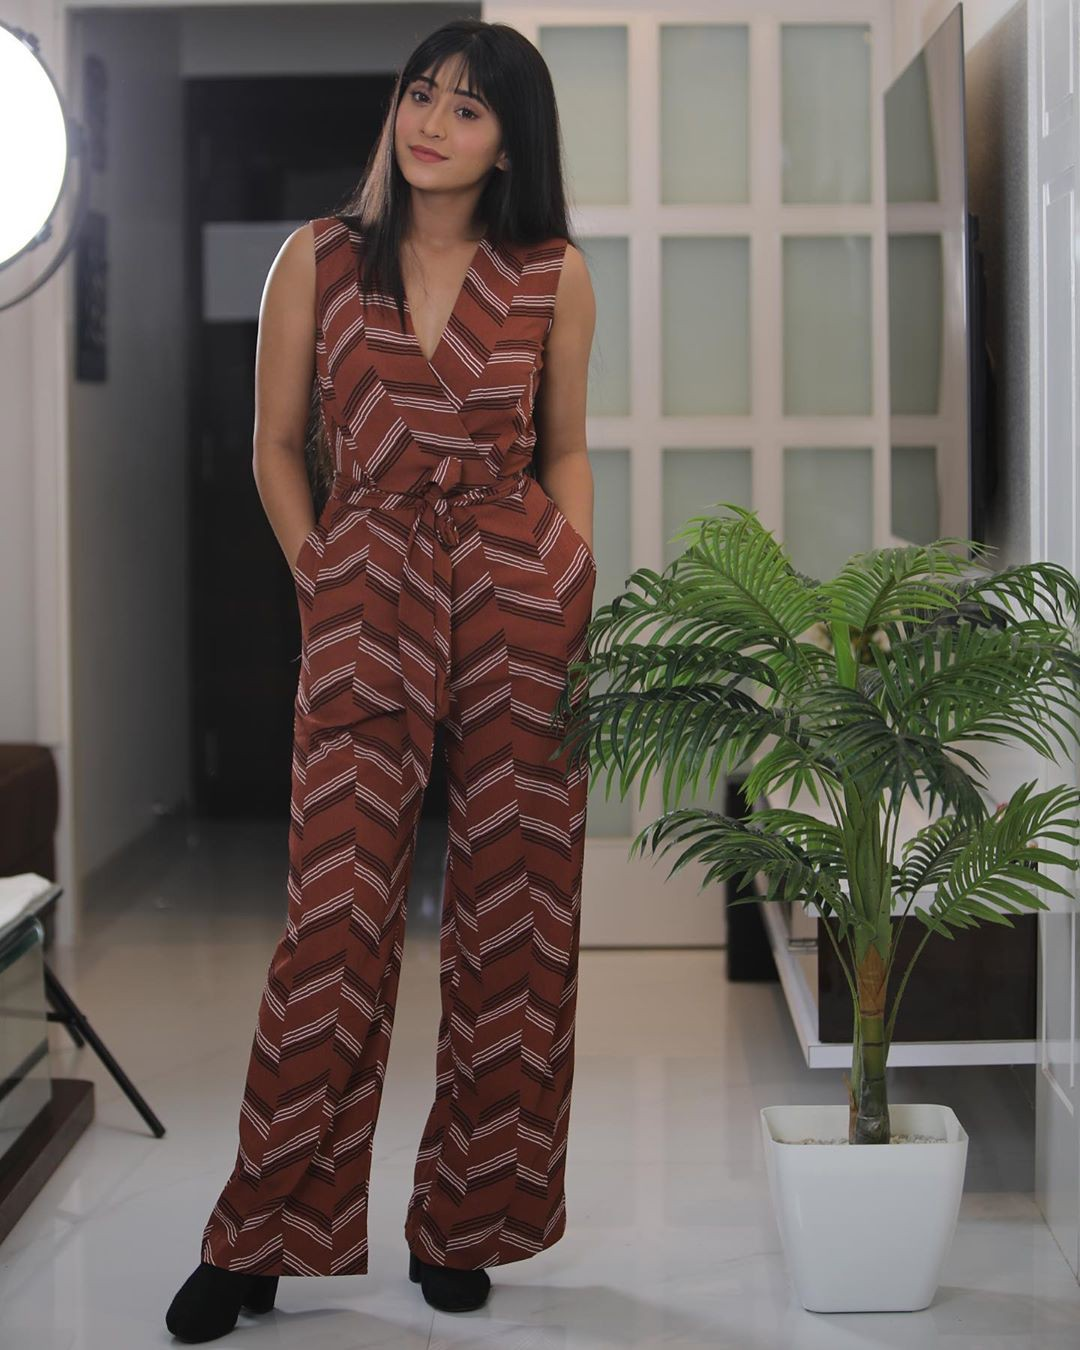 brown outfit stylevore with dress, sexy legs, attire ideas